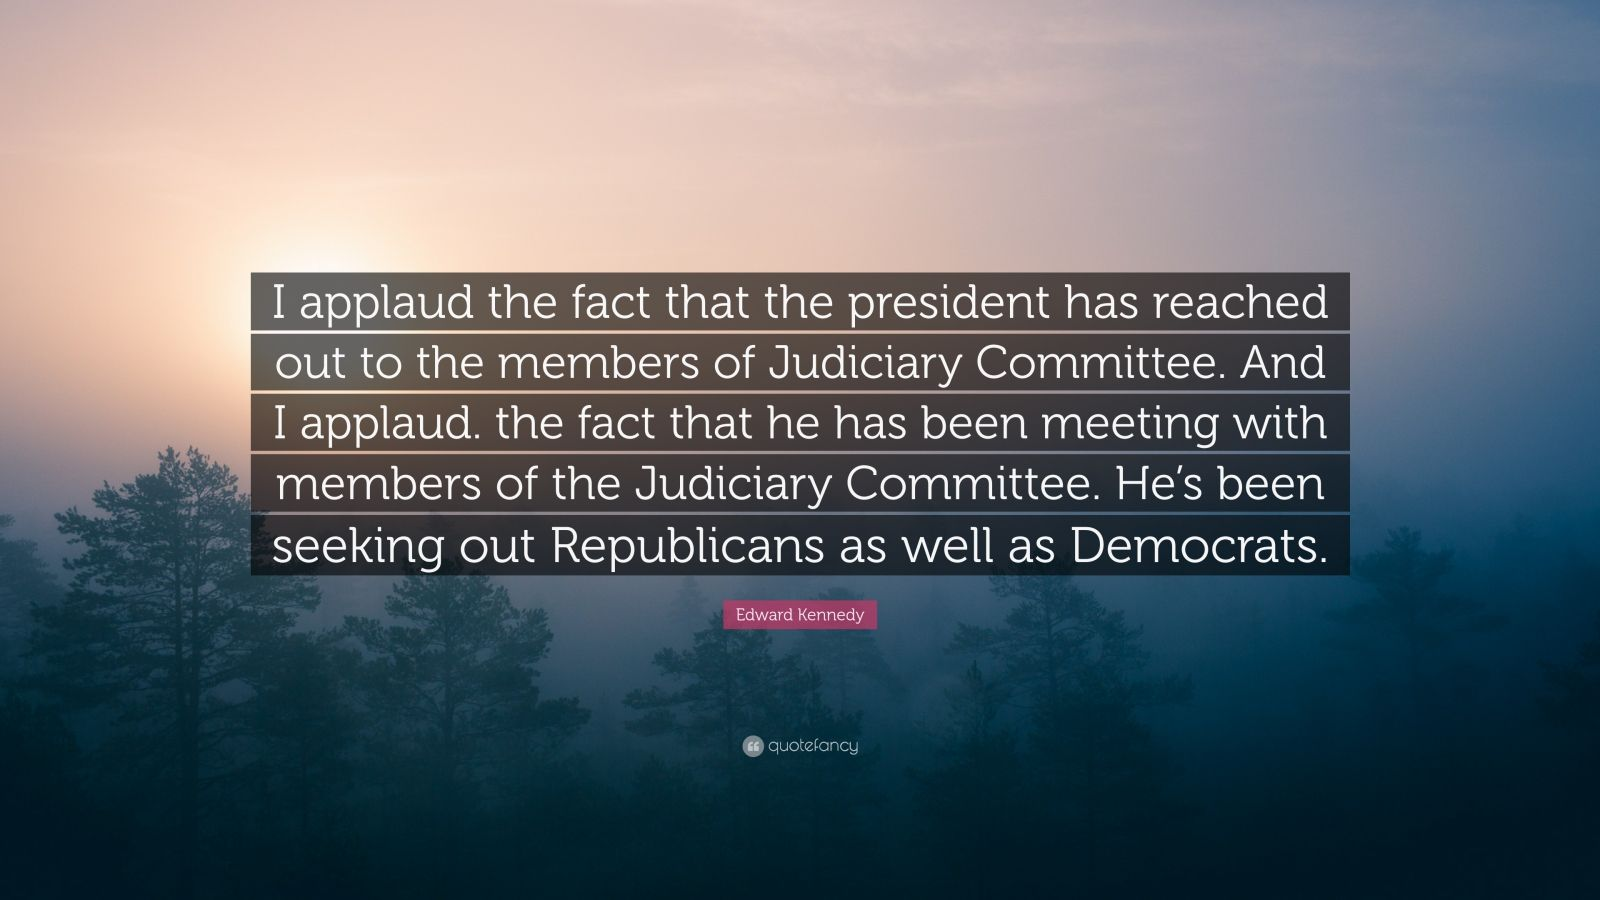 """Edward Kennedy Quote: """"I applaud the fact that the president has reached out to the members of Judiciary Committee. And I applaud. the fact that he has been meeting with members of the Judiciary Committee. He's been seeking out Republicans as well as Democrats."""""""